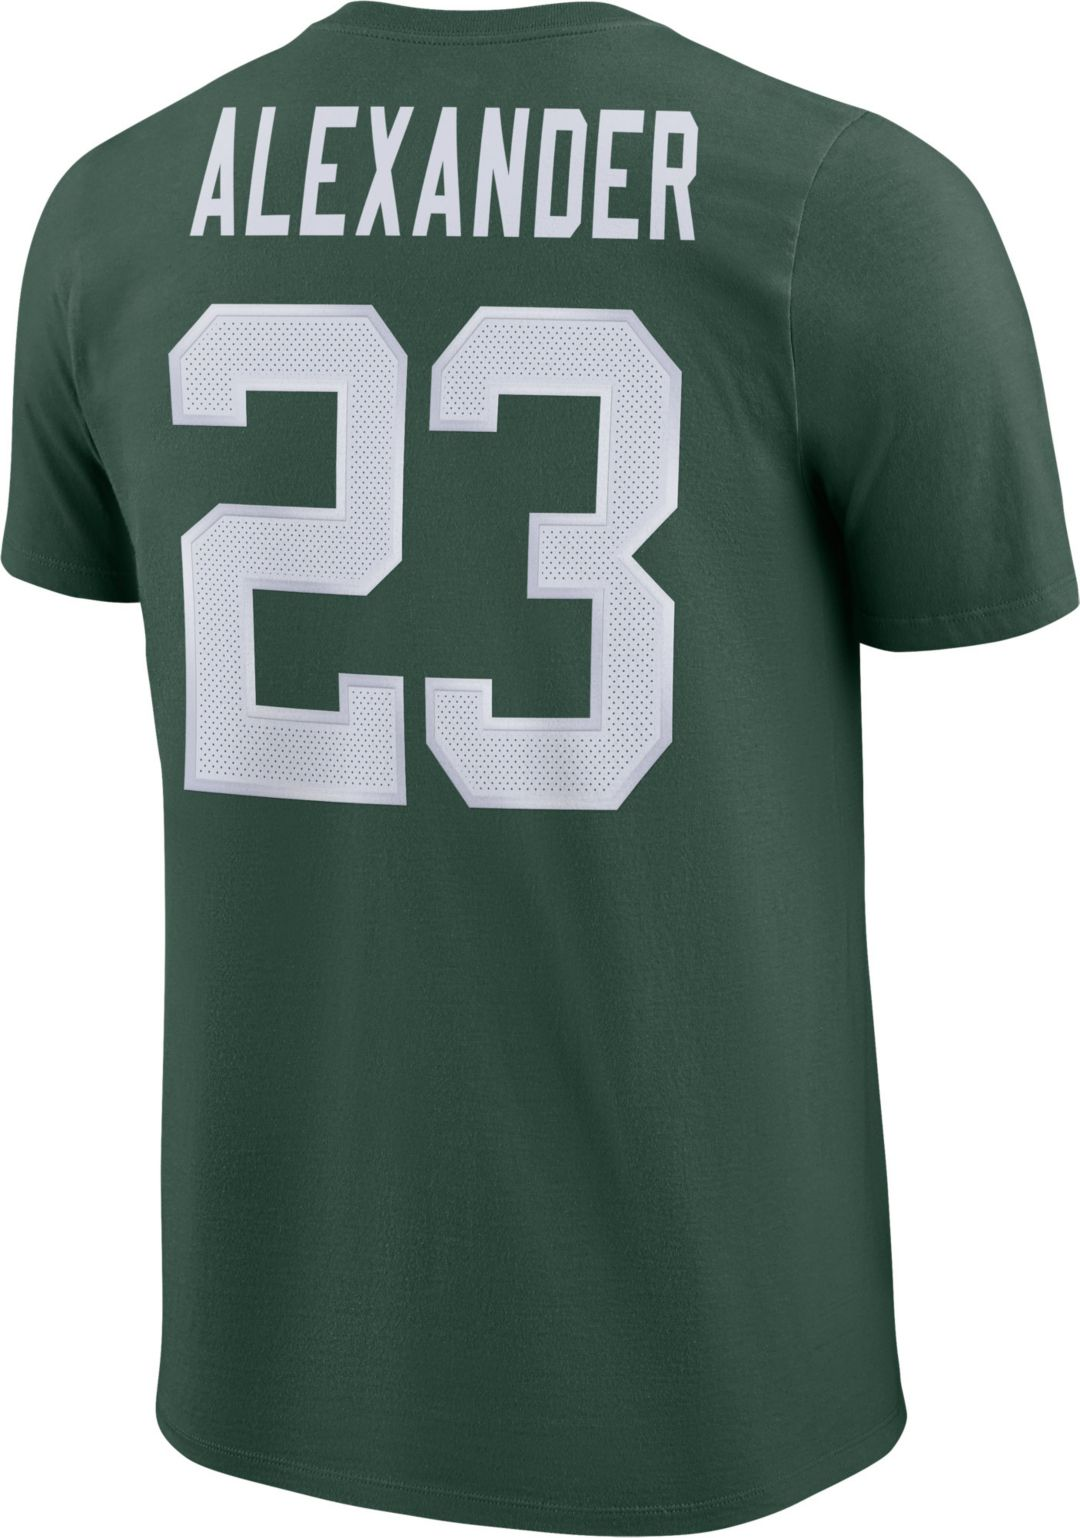 f3e08219 Jaire Alexander #23 Nike Men's Green Bay Packers Pride Green T-Shirt